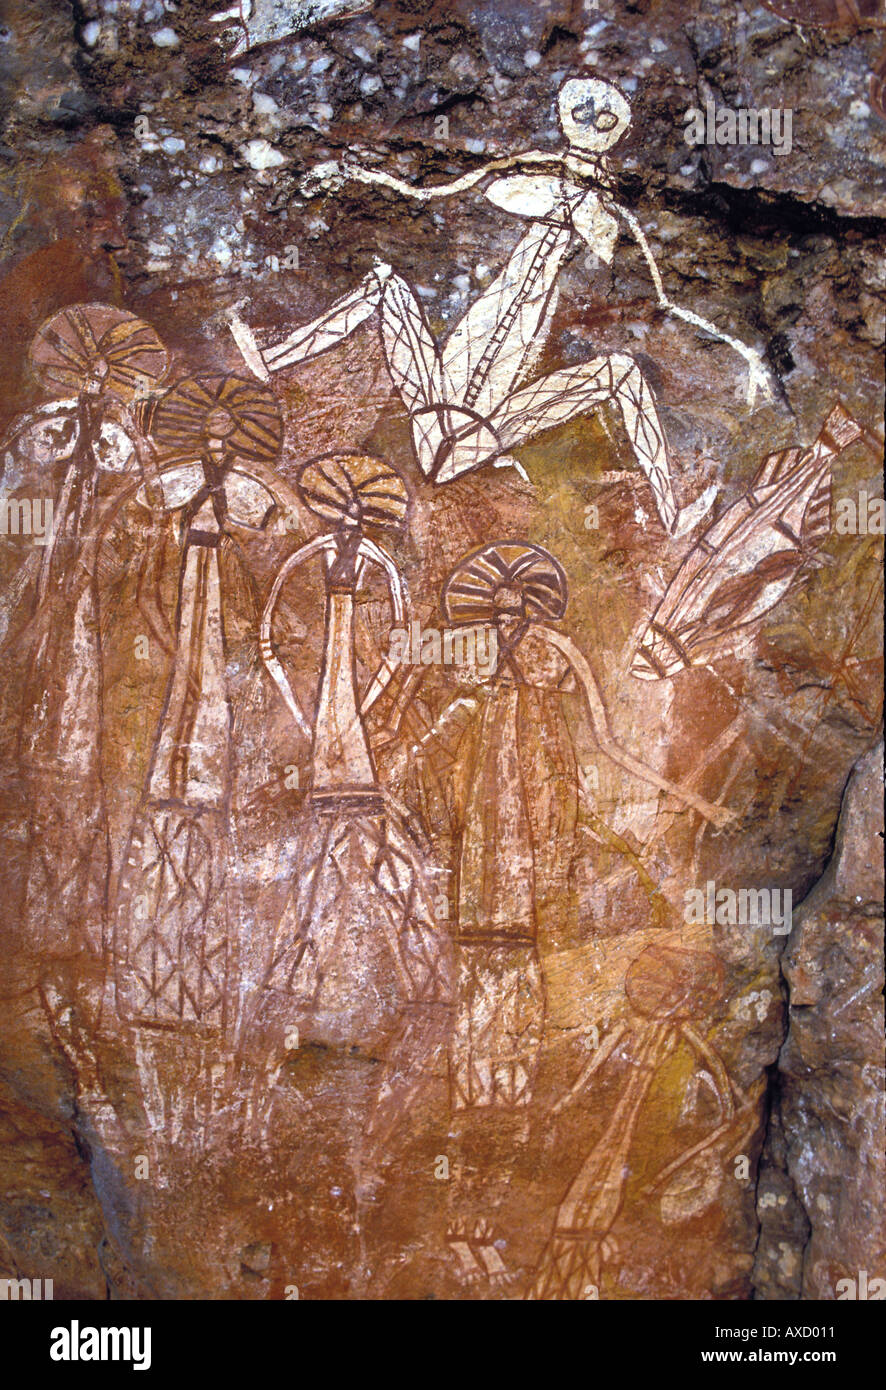 Aboriginal Art & Culture - Alice Springs Australia